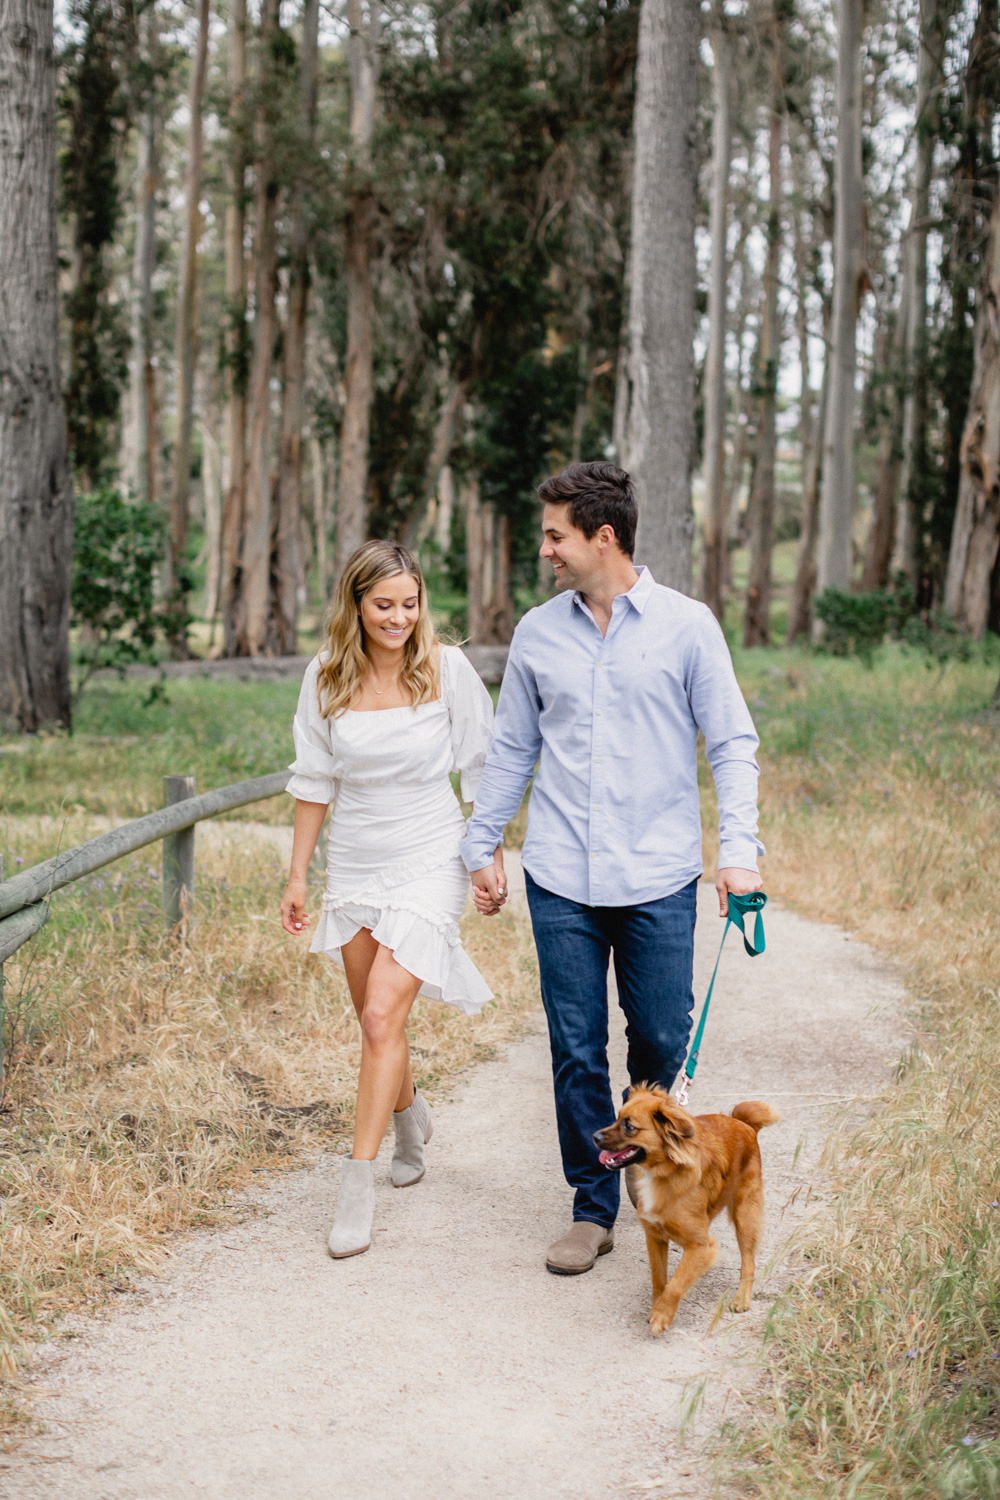 Ashley-Rae-Studio-San-Luis-Obispo-Engagement-Session-Santa-Barbara-Wedding-Photographer-104.jpg